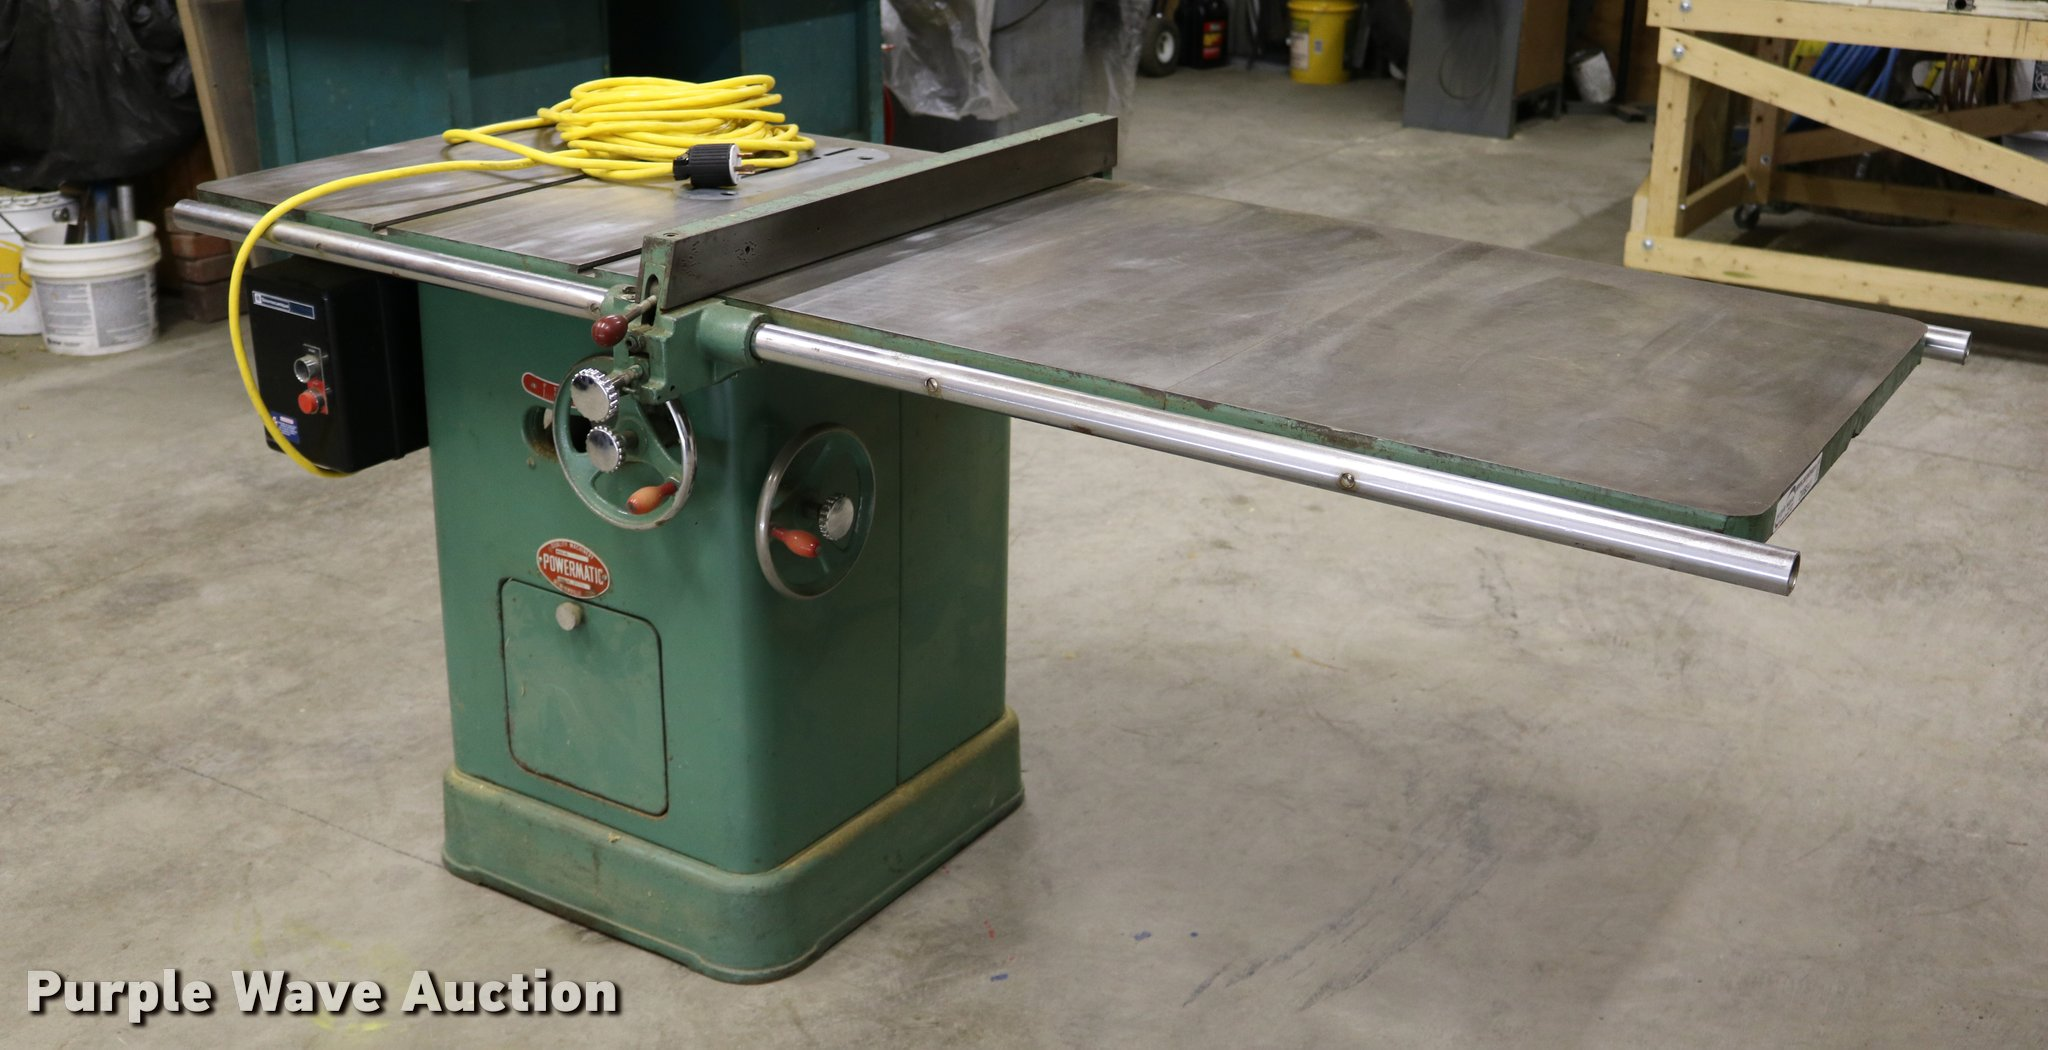 Powermatic 65 table saw item dm9341 sold august 30 vehi dm9341 image for item dm9341 powermatic 65 table saw keyboard keysfo Image collections